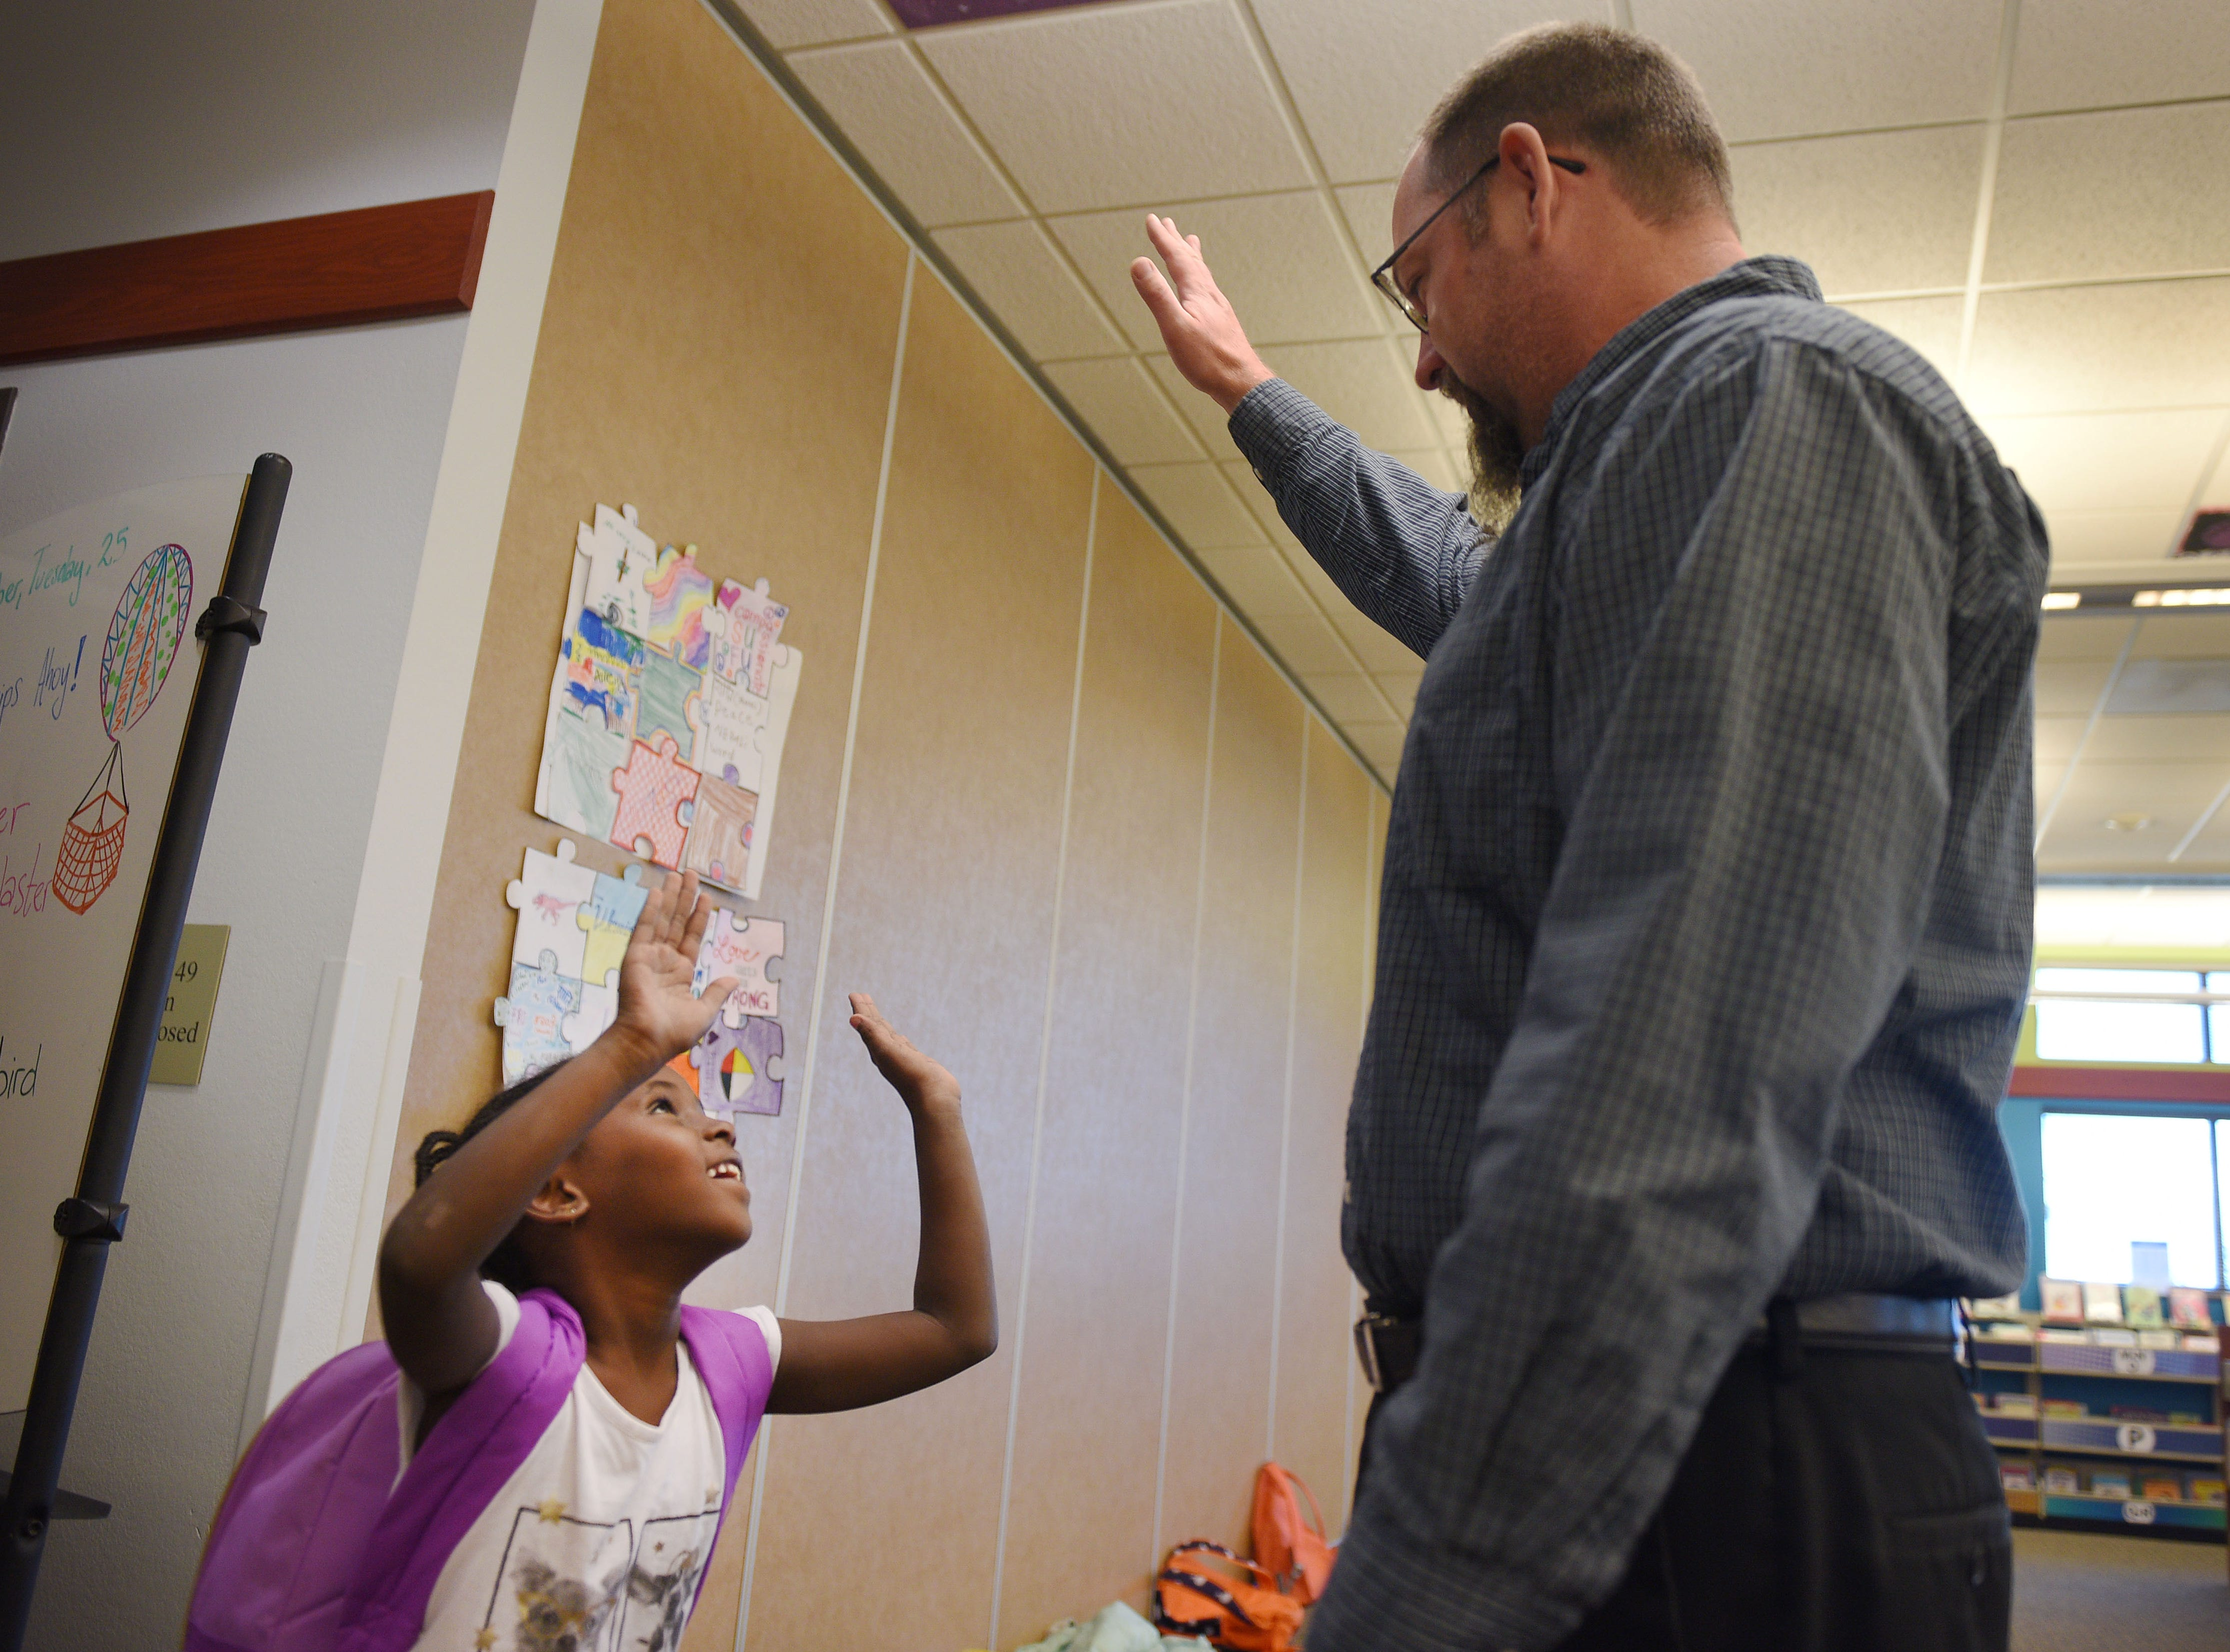 Oak View Branch Librarian James Borchert high fives Sara Akot-Kuel when she walks through the doors at the library after school Wednesday, Sept 26, at the library in Sioux Falls.